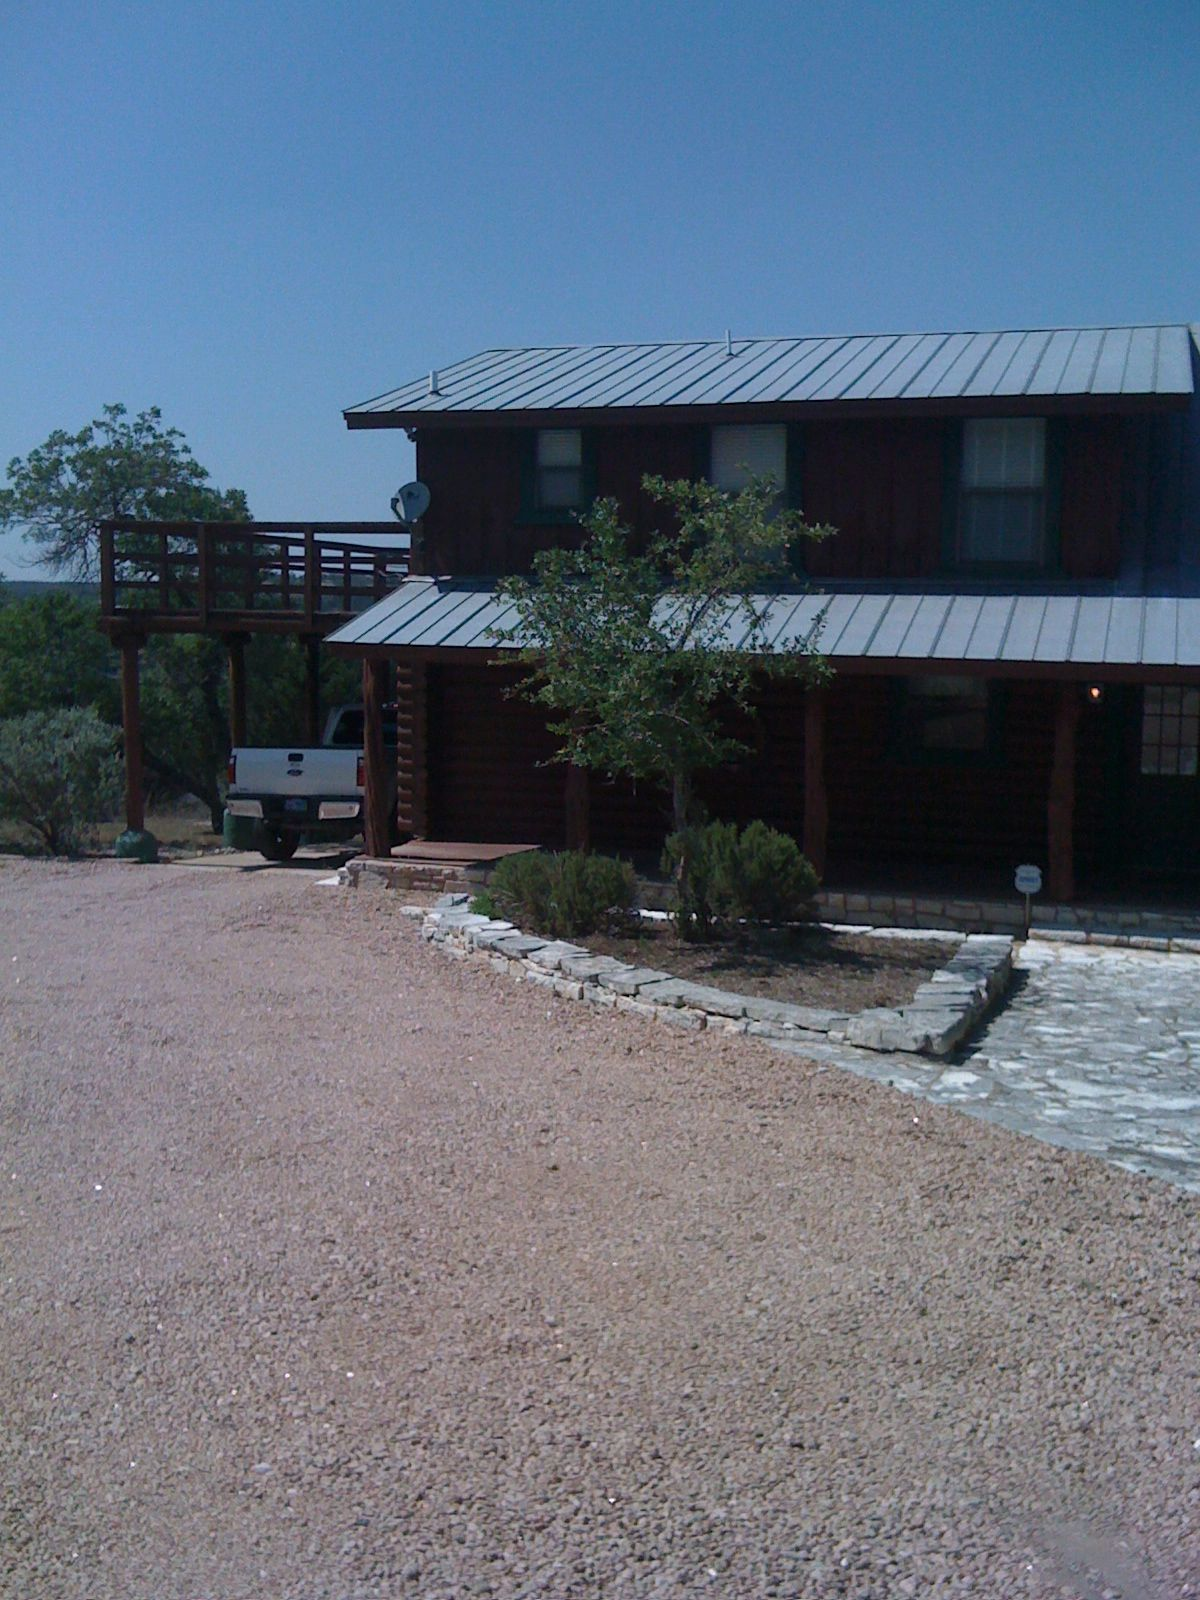 fredericksburg this cottages us in image creek of booking tx triple cottage com gallery property hotel